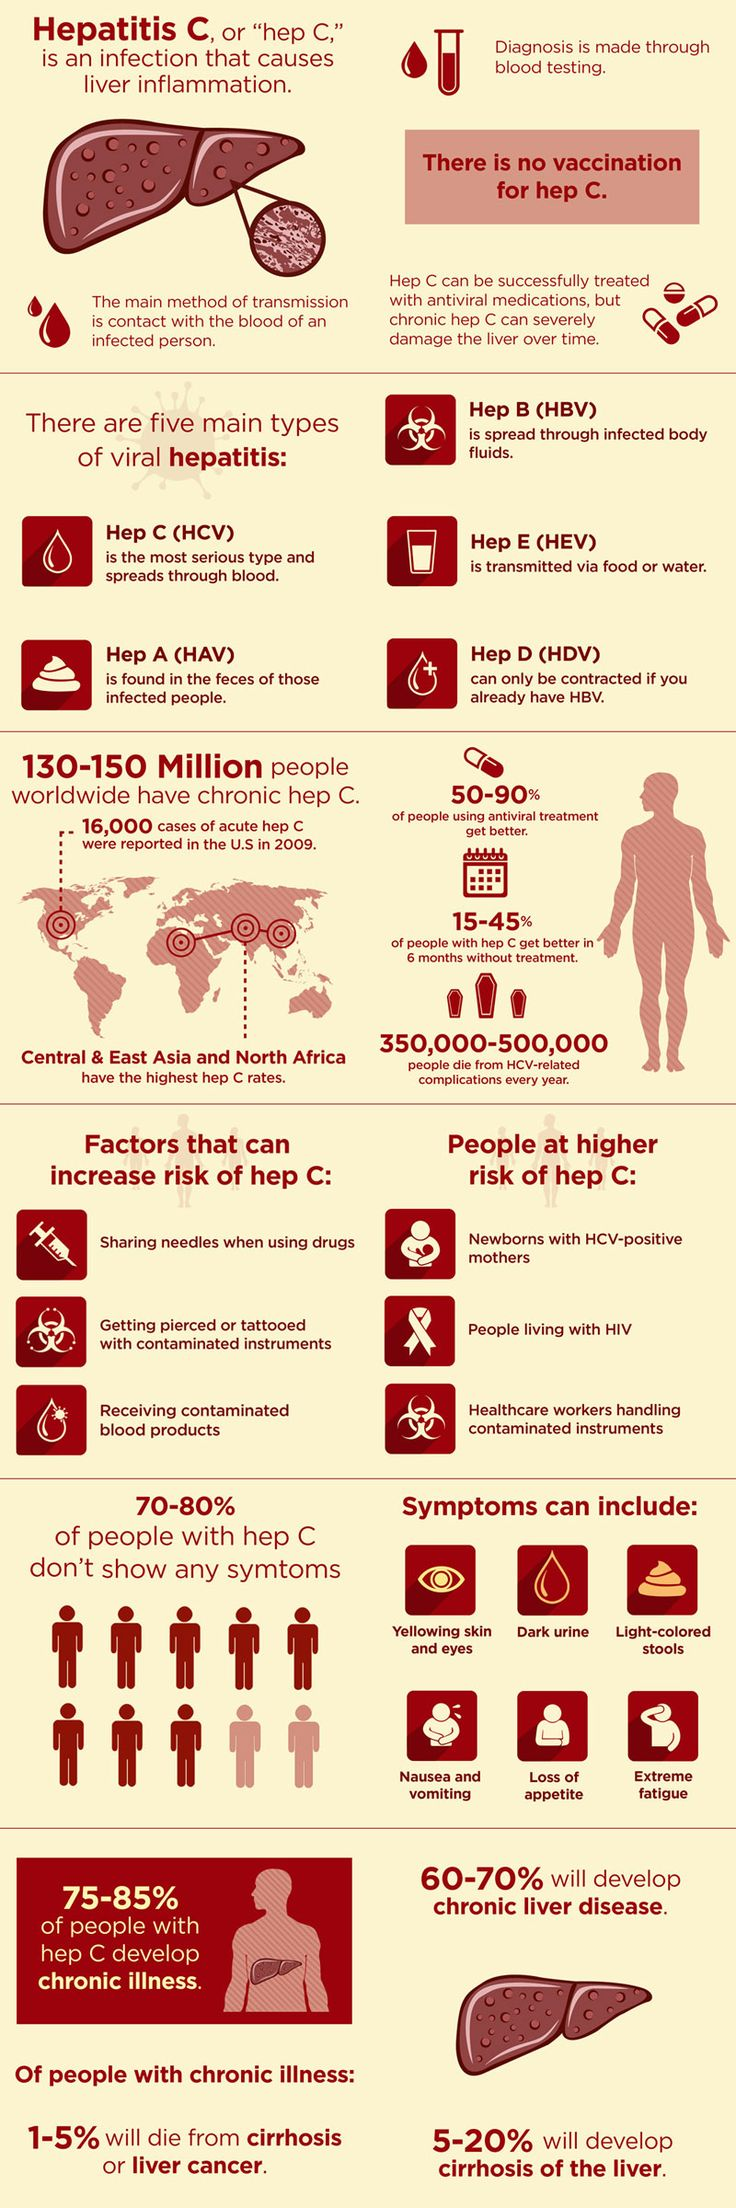 About 300 million individuals around the world are infected with the infectious disease hepatitis C, and approximately 1 to 2% of the population in the U.S. is infected. Hepatitis C can cause cirrhosis, scarring of the